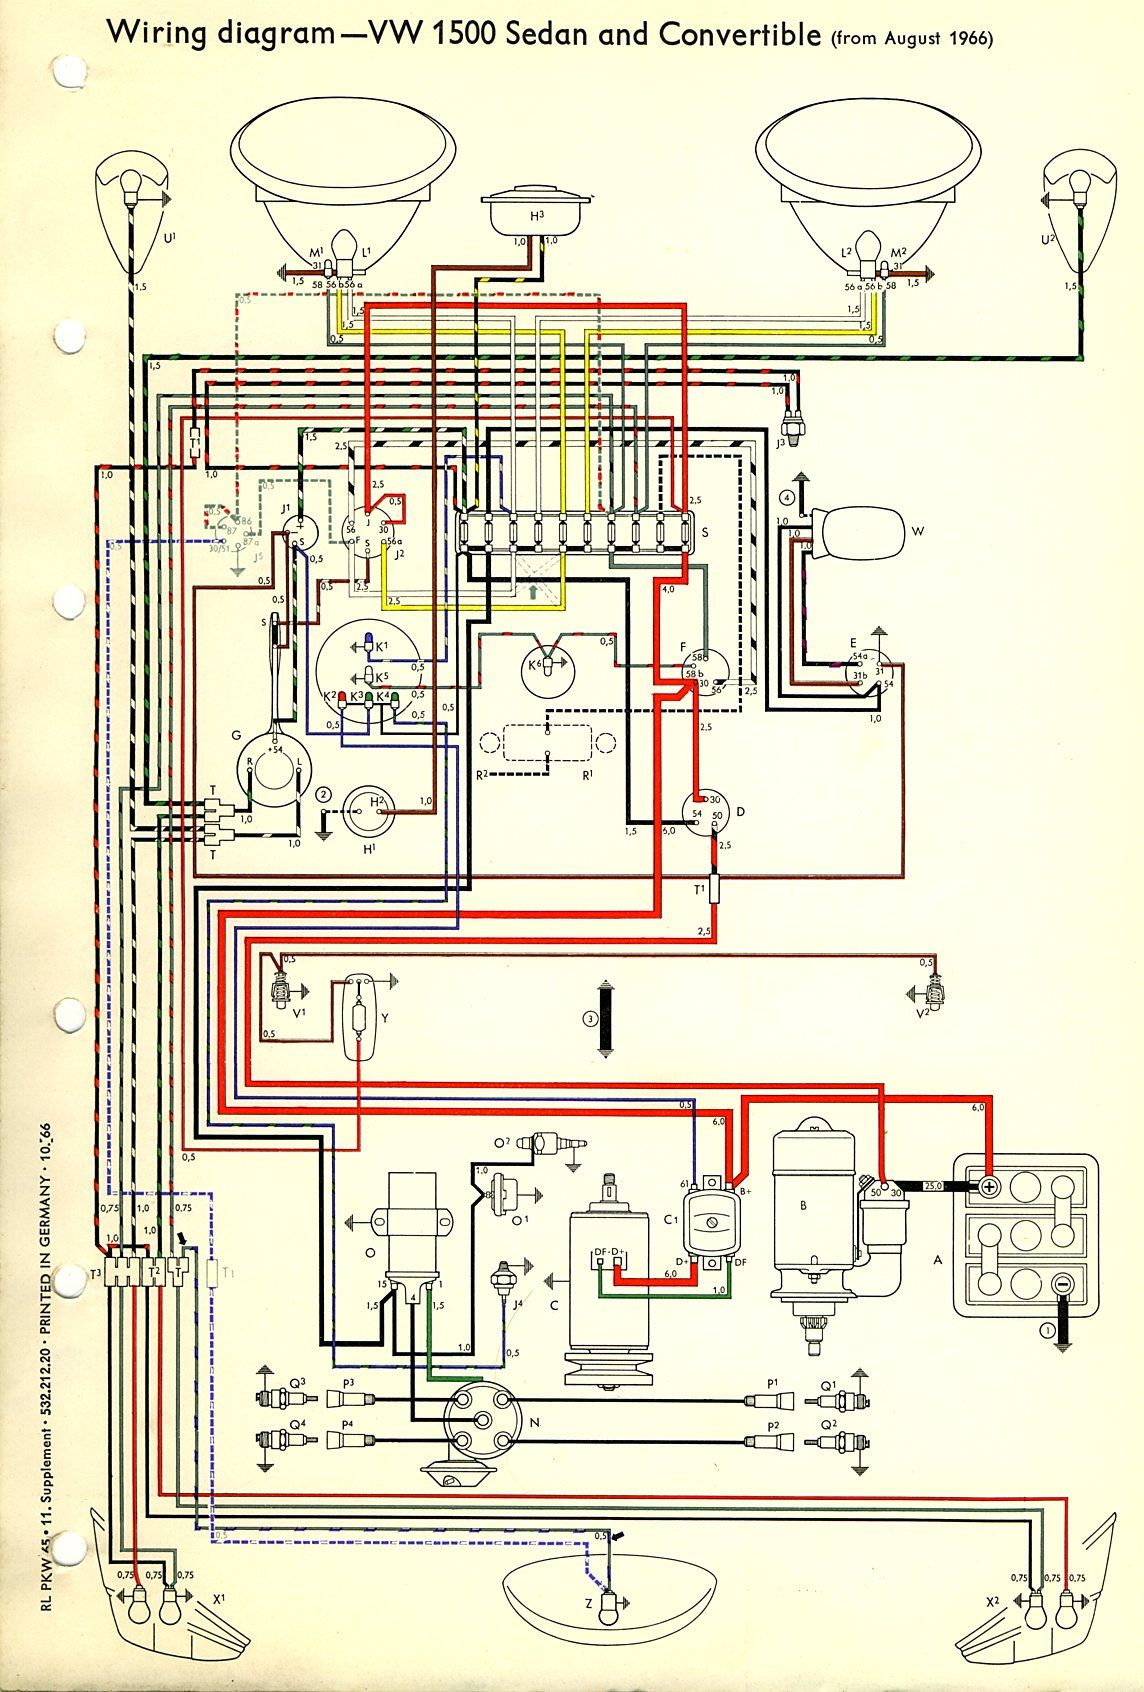 75 Beetle Wiring Diagram Trusted Diagrams Buggy Schematic 1967 Thegoldenbug Com Dune Rh Pinterest 73 Bug Engine Complete